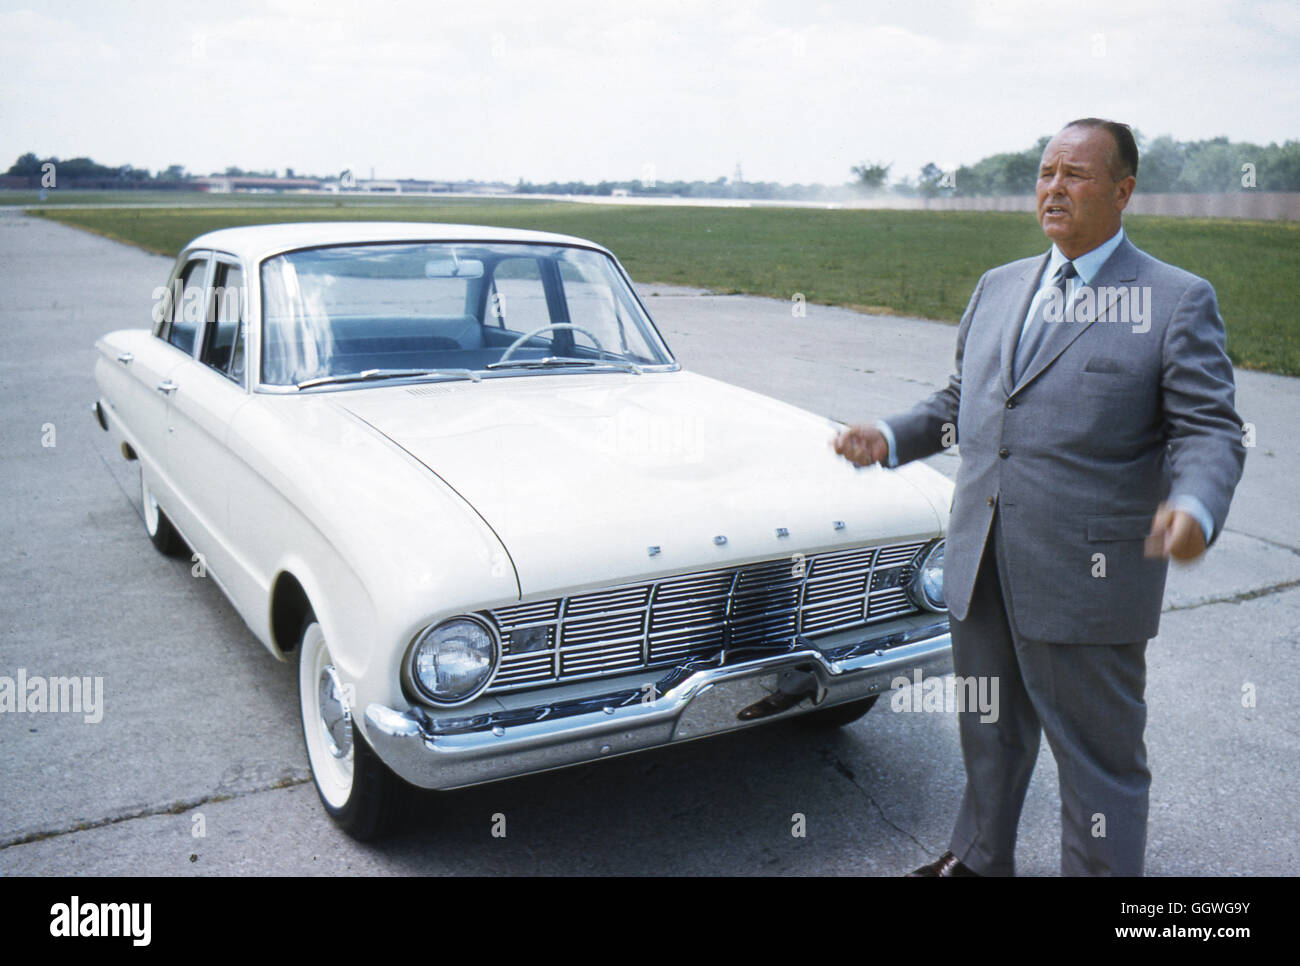 George W. Walker, automotive designer, with a 1960 Ford Falcon. - Stock Image